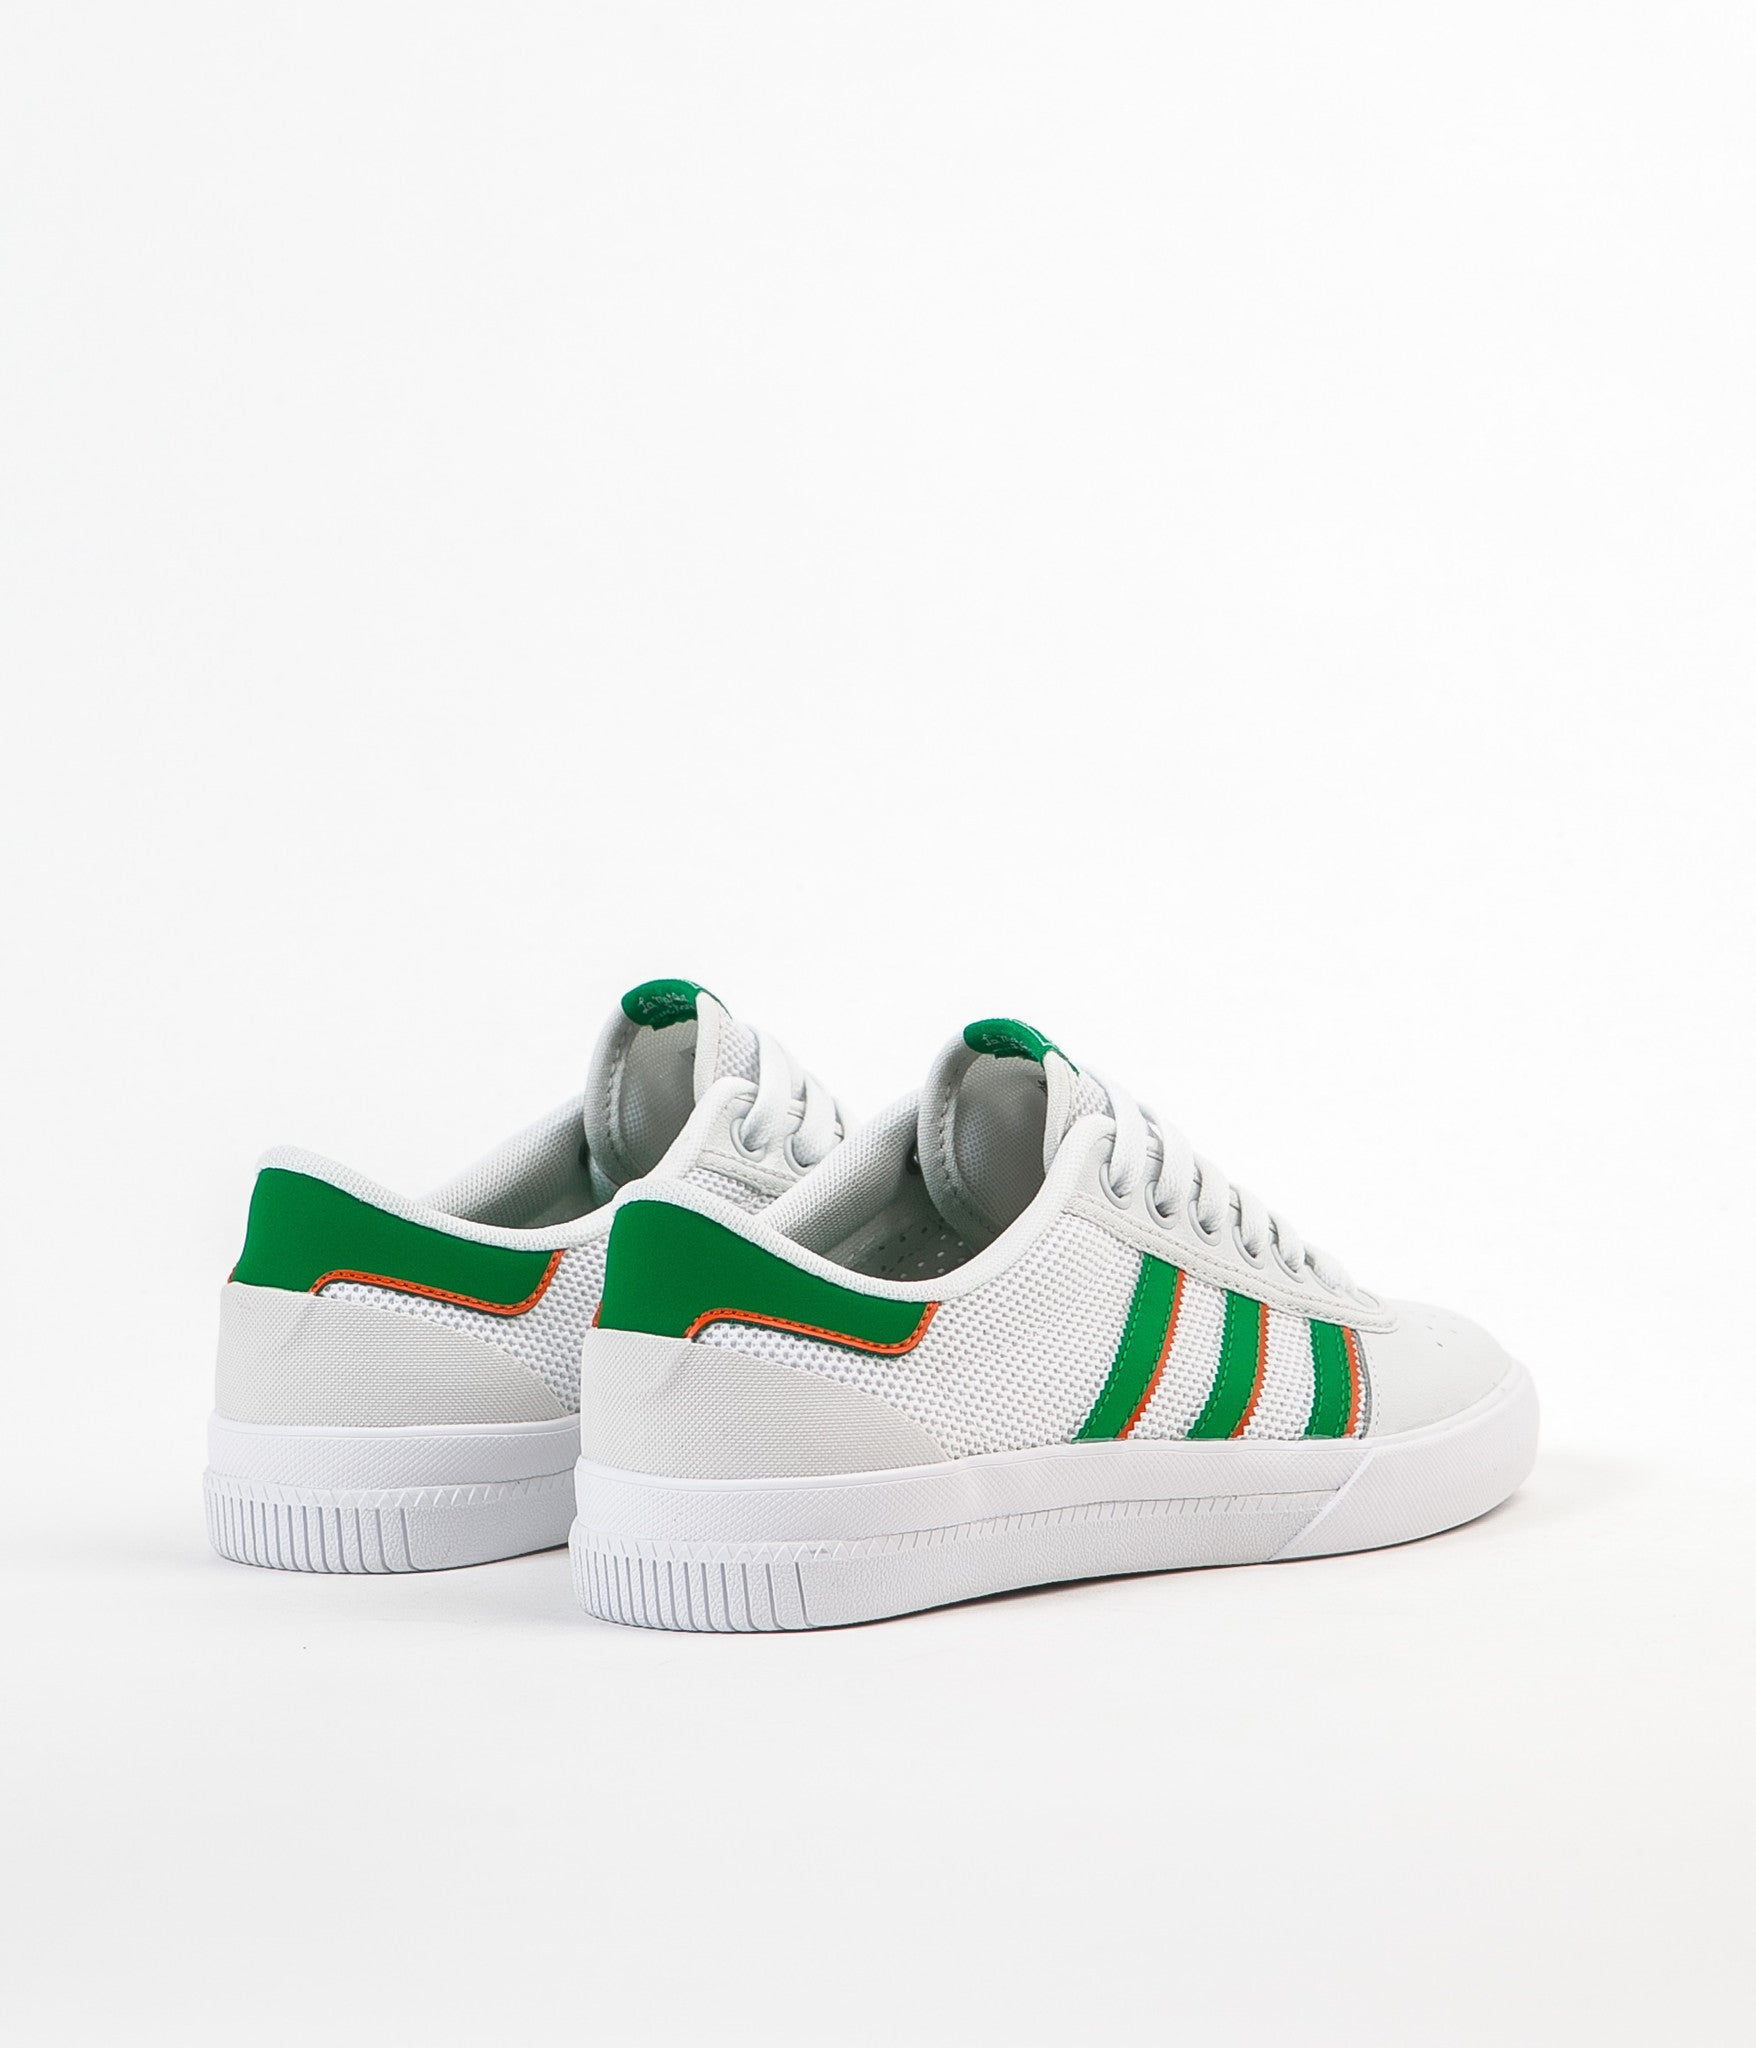 competitive price d178c 85904 ... Adidas Lucas Premiere Adv Shoes - White   Green   White ...